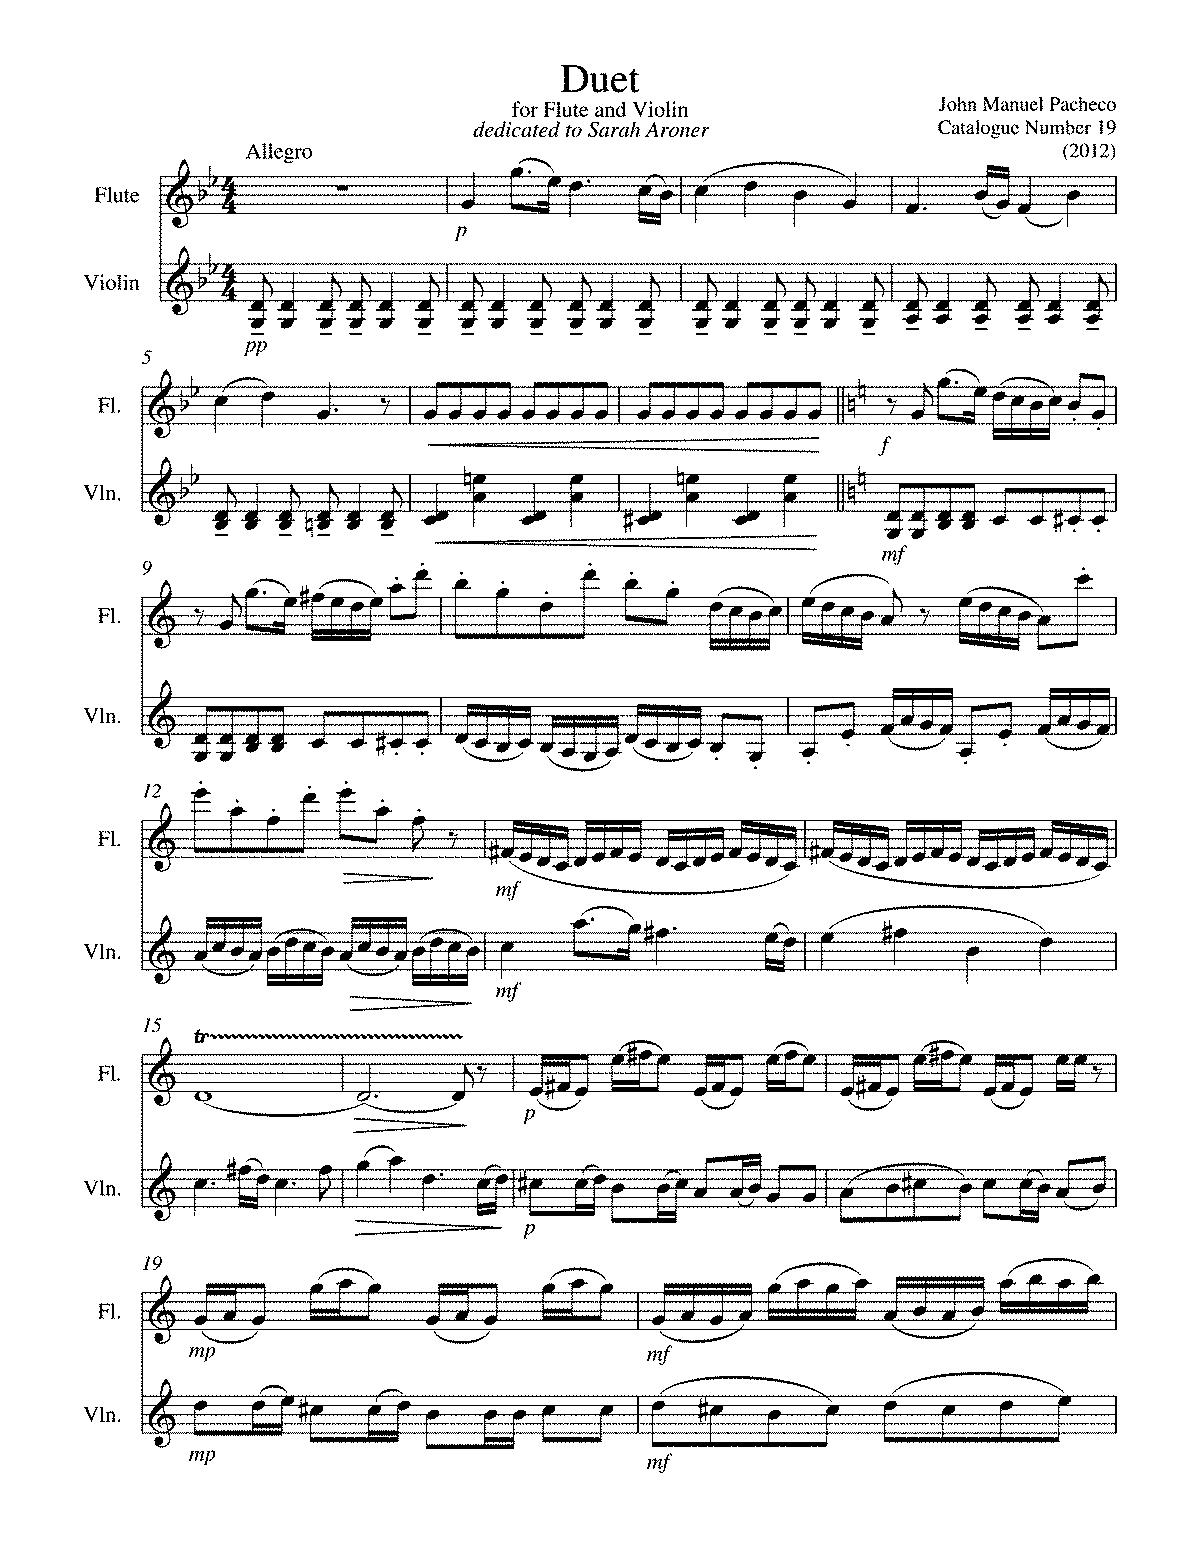 PMLP397300-Pacheco-Duet for Flute and Violin (full score).pdf